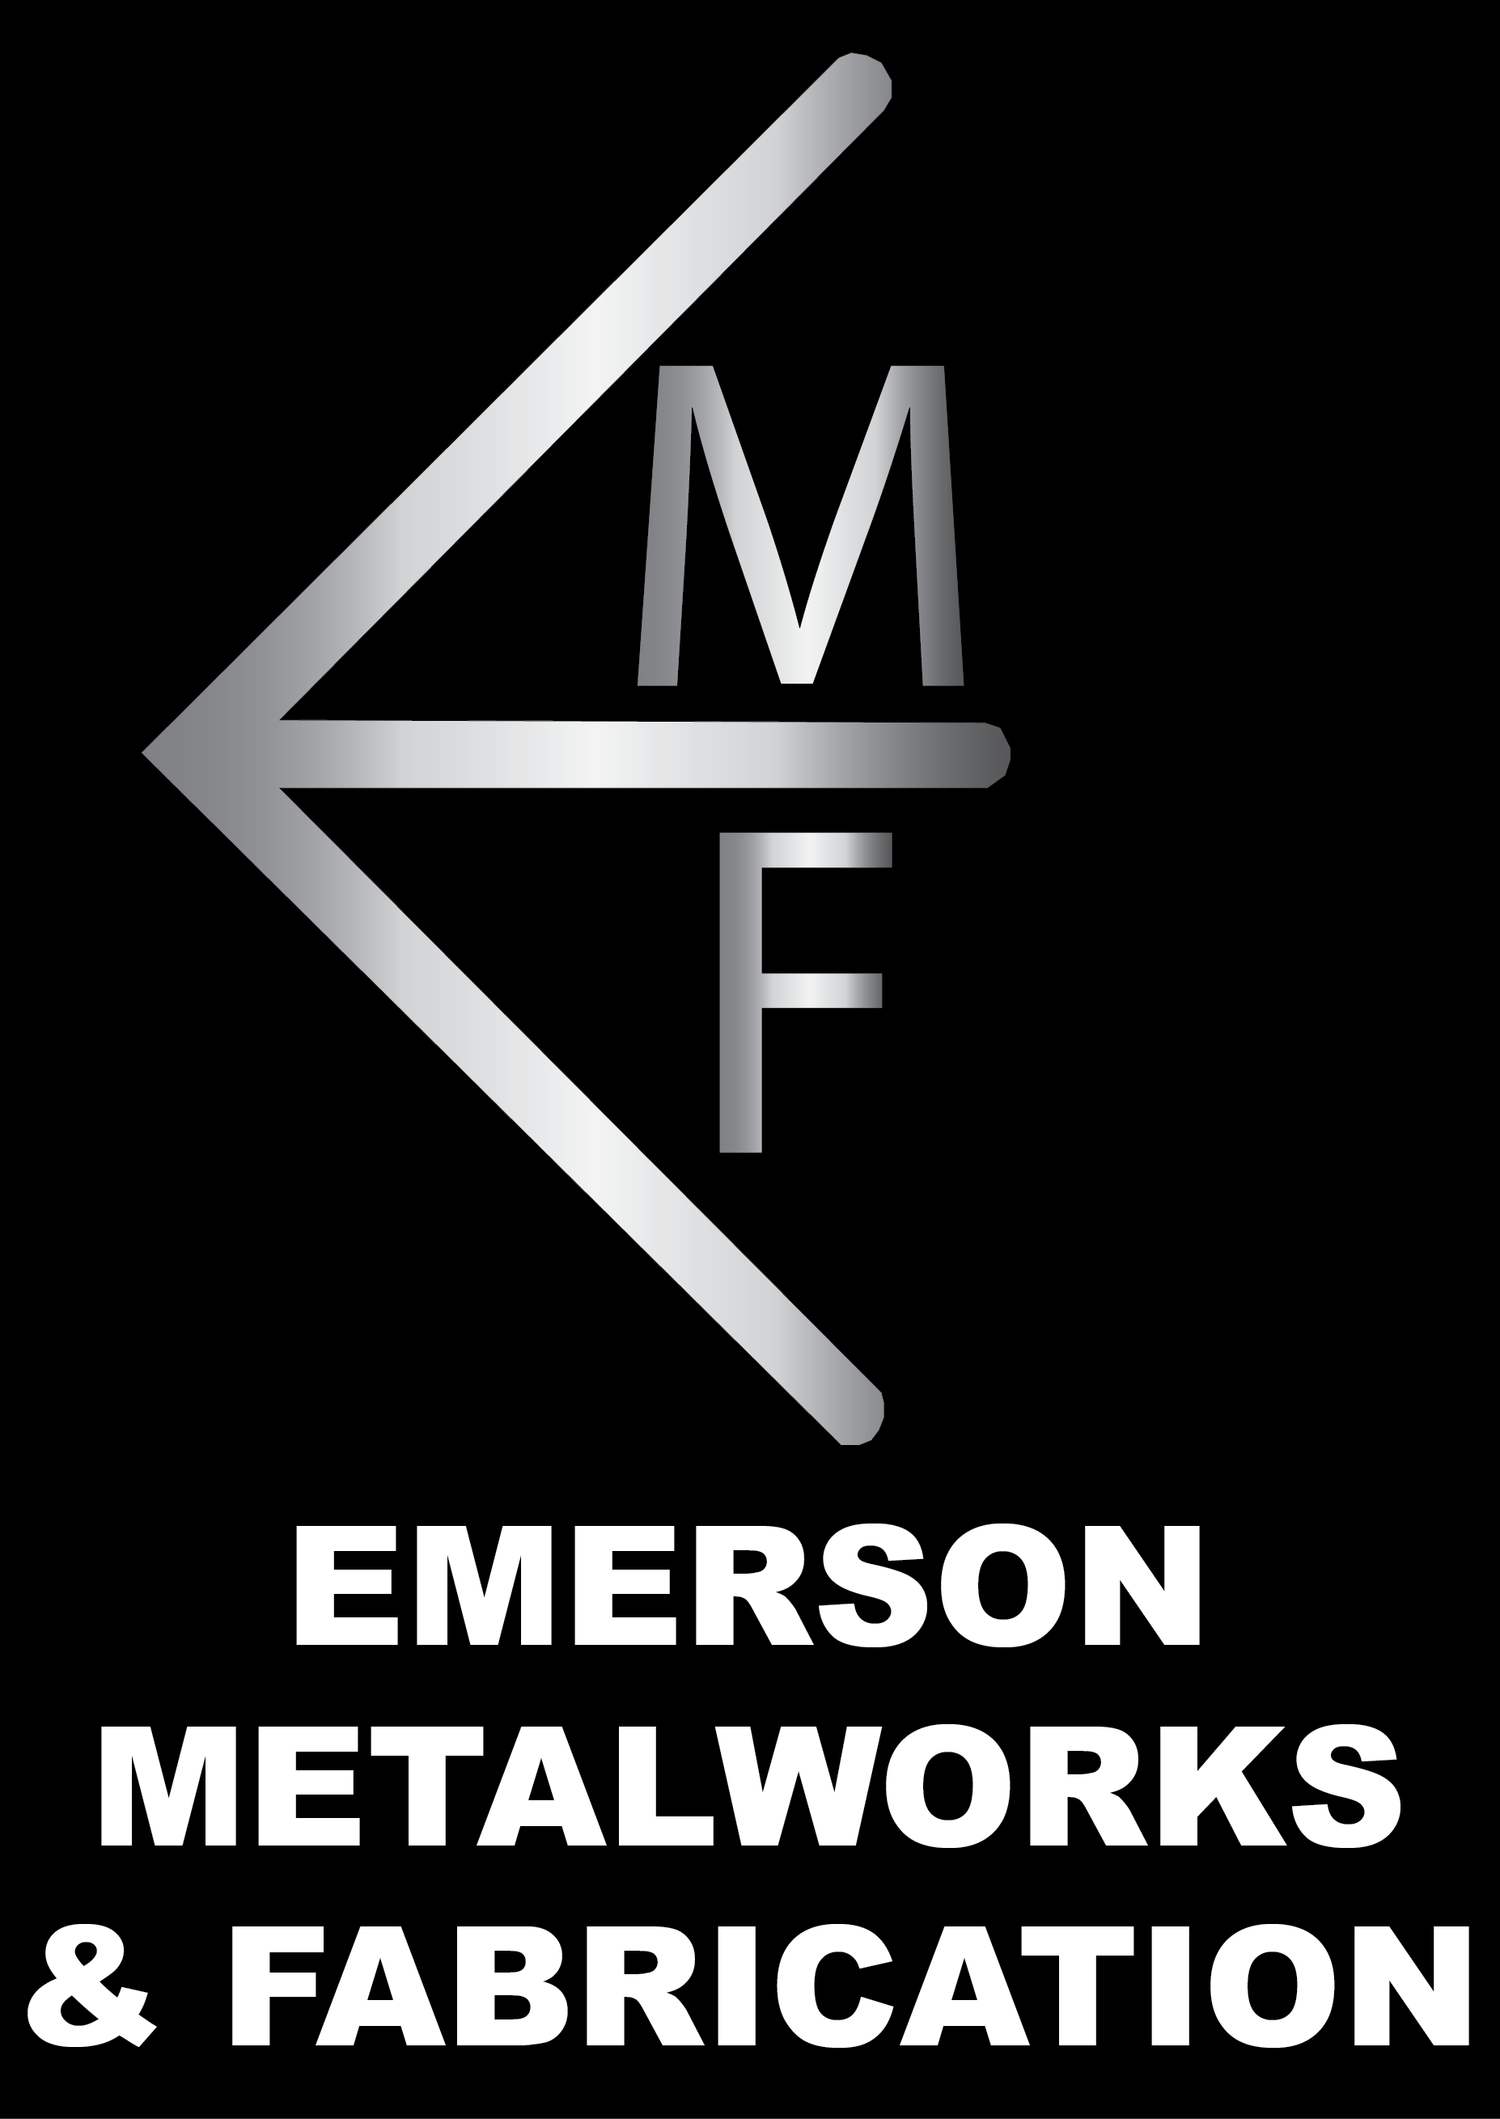 Emerson Metalworks and Fabrication